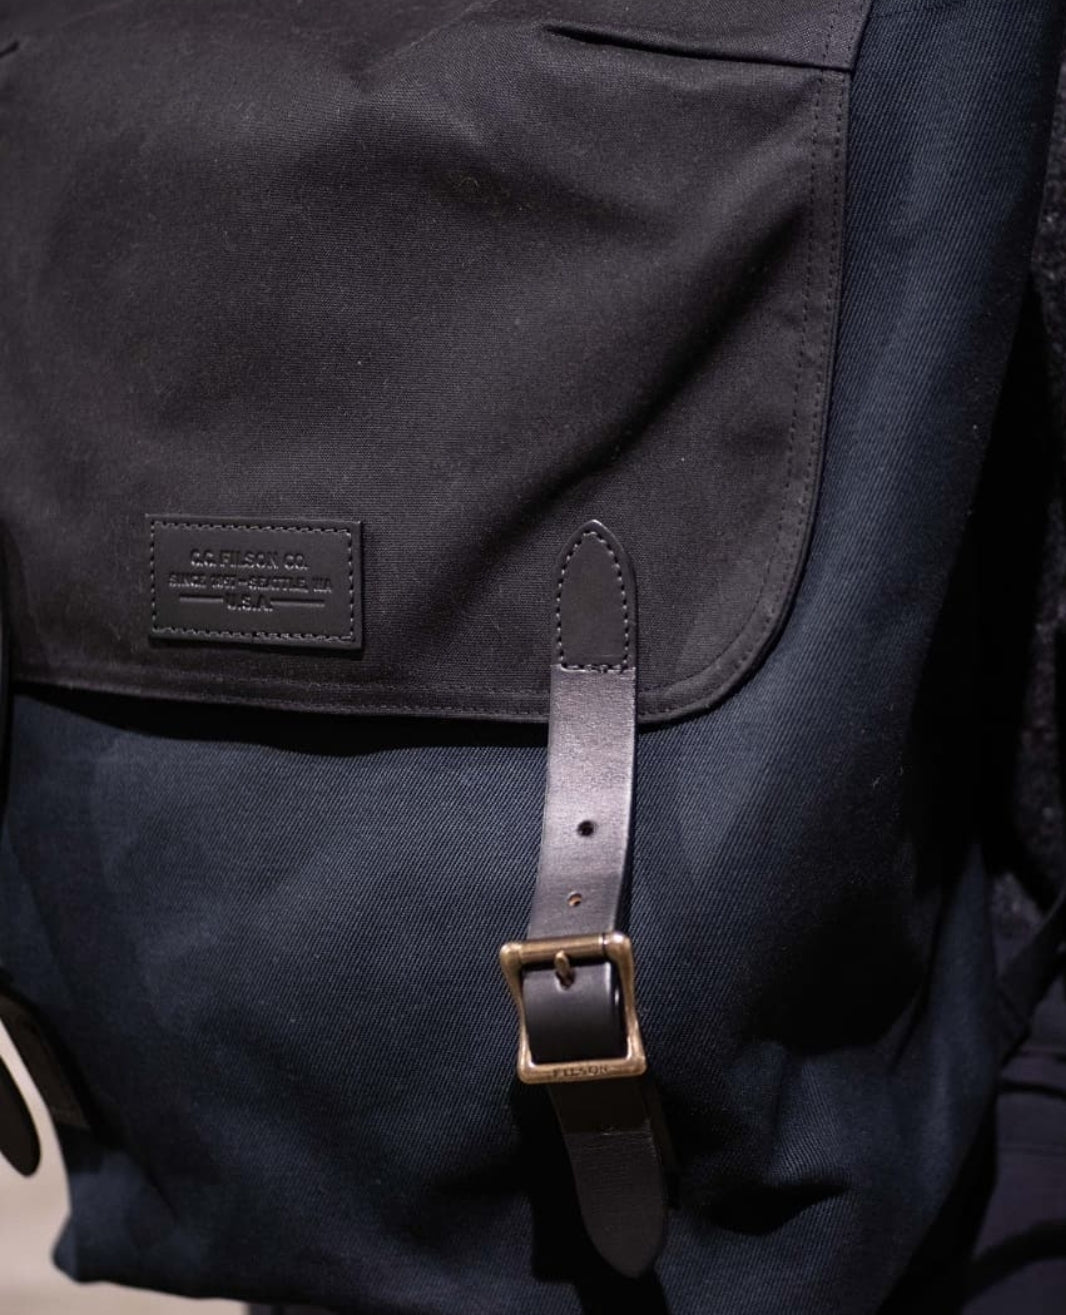 Ranger Backpack - The Signet Store